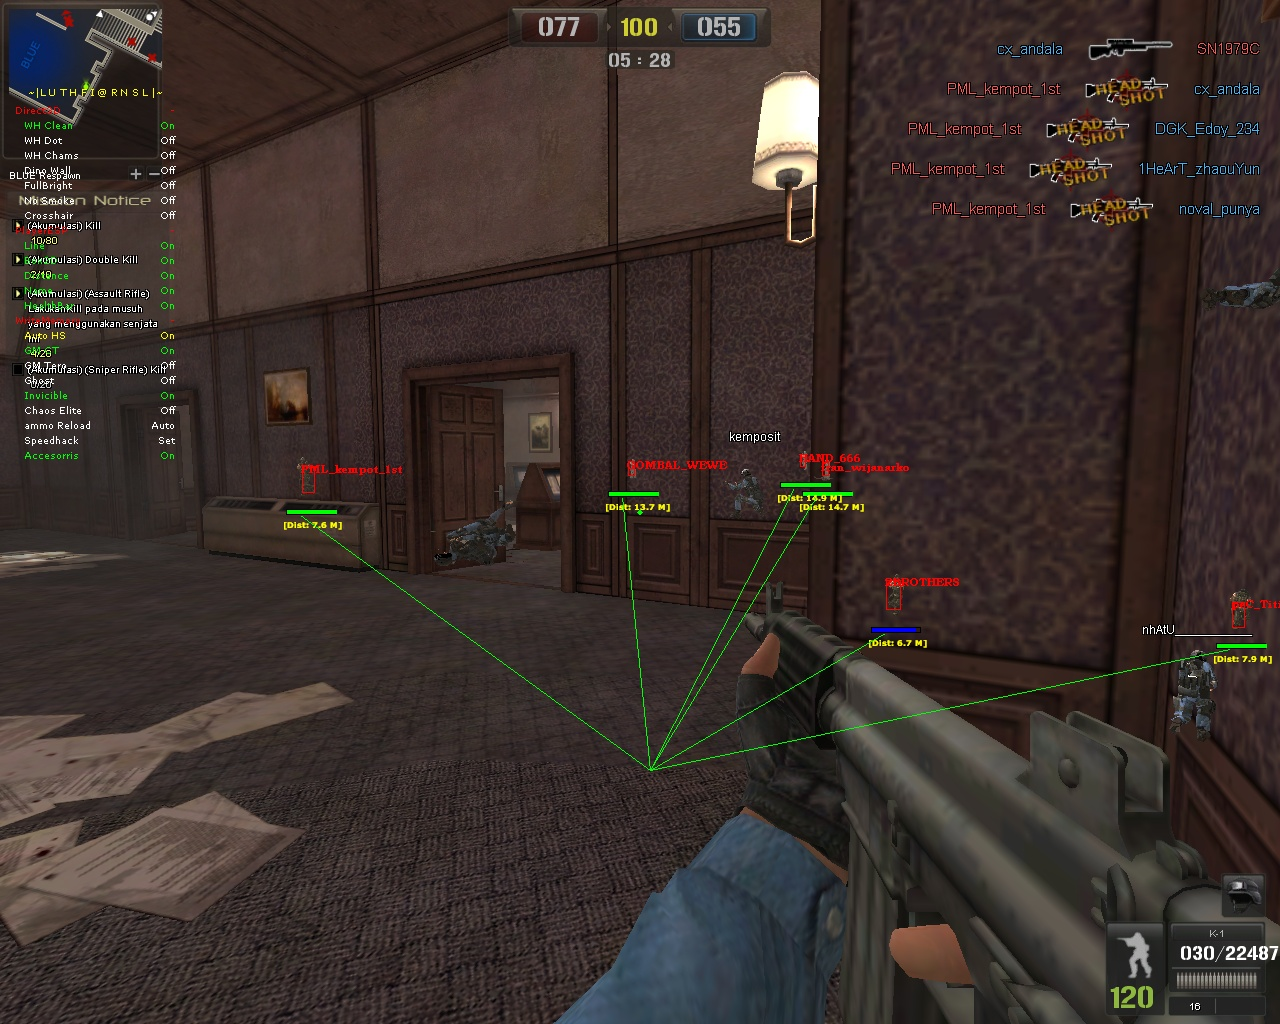 share cheat point blank 7 april 2012 terbaru tentunya cheat pb 7 april